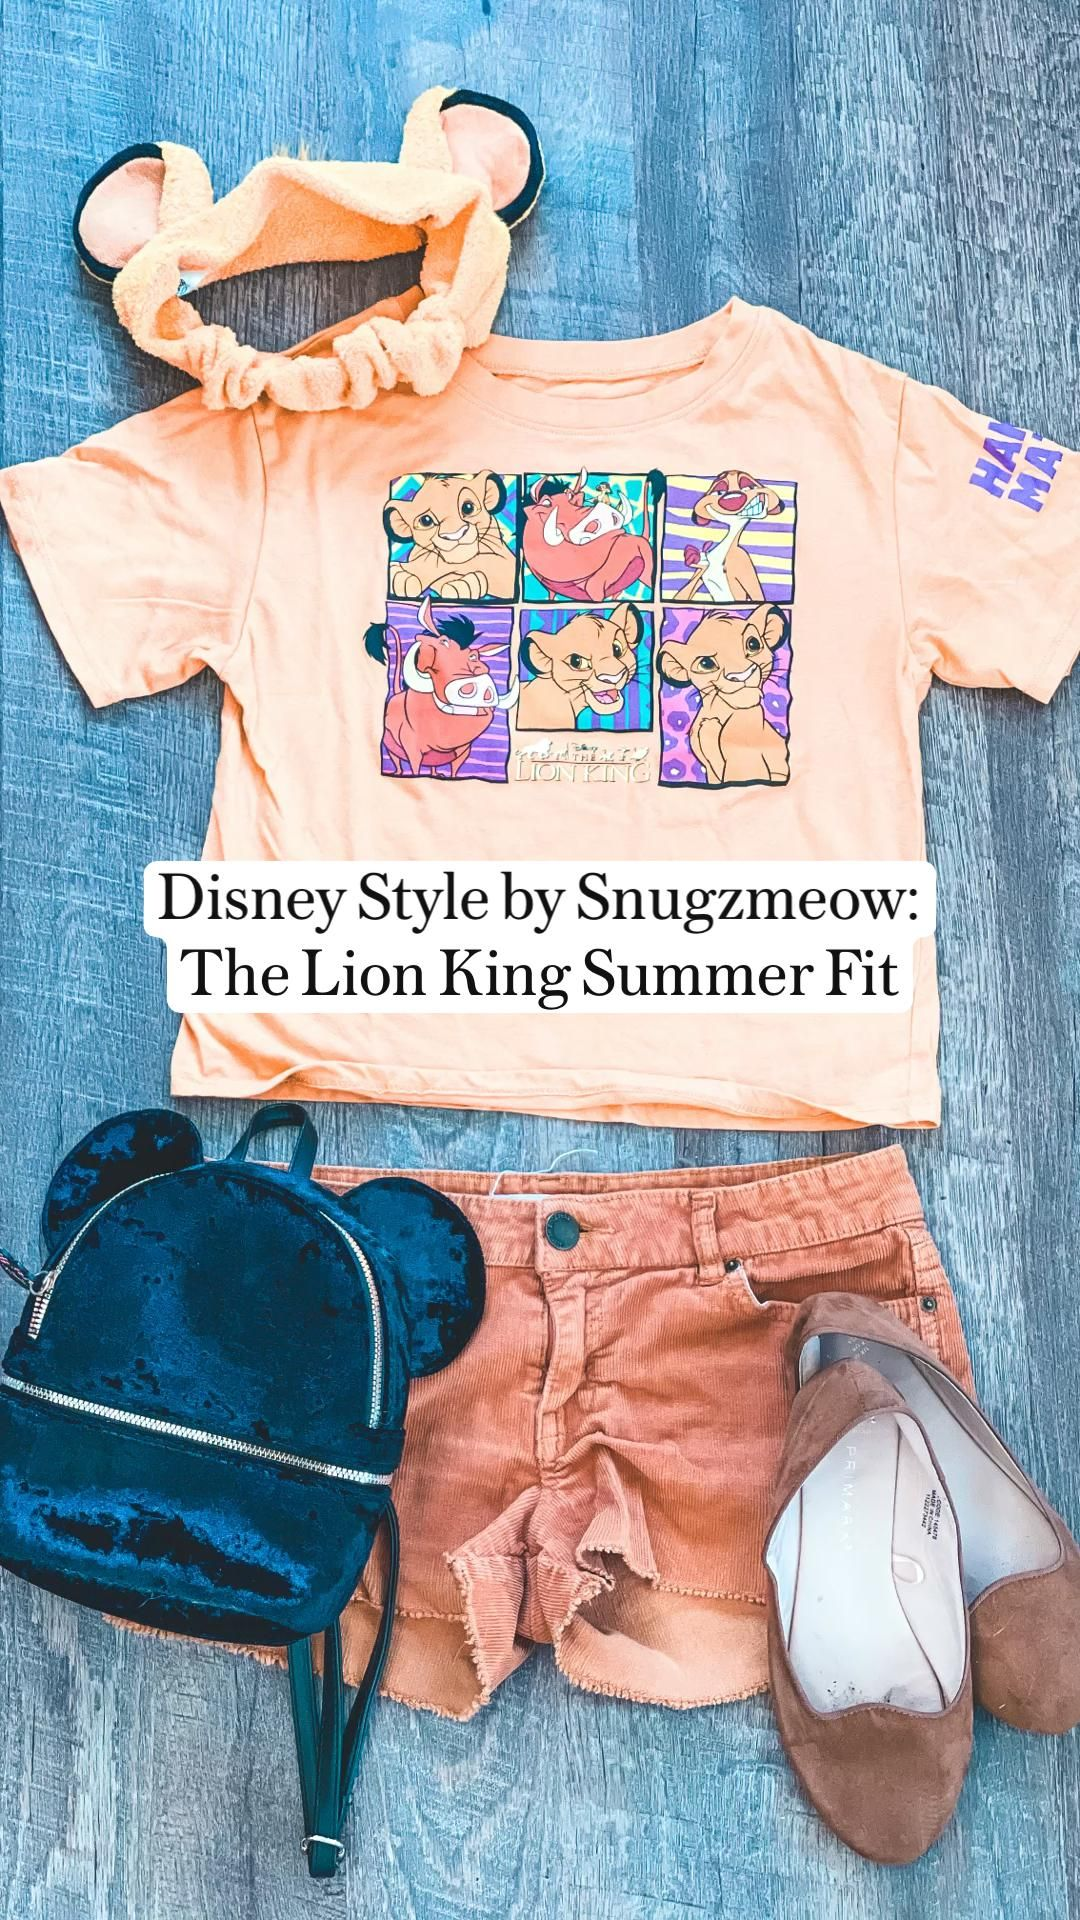 300+ Disney Style by Snugzmeow  The Lion King Summer Fit